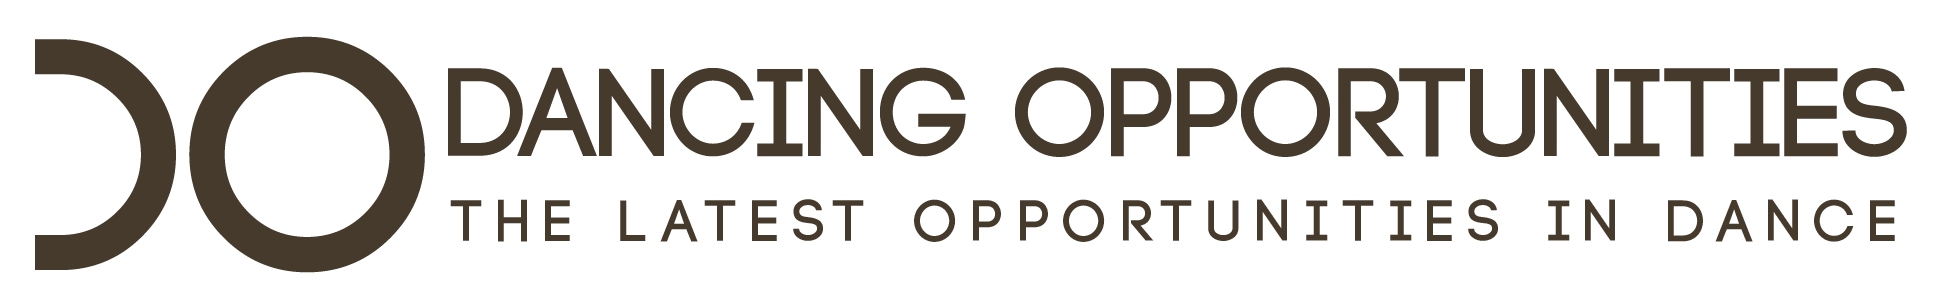 Dancing Opportunities Logo